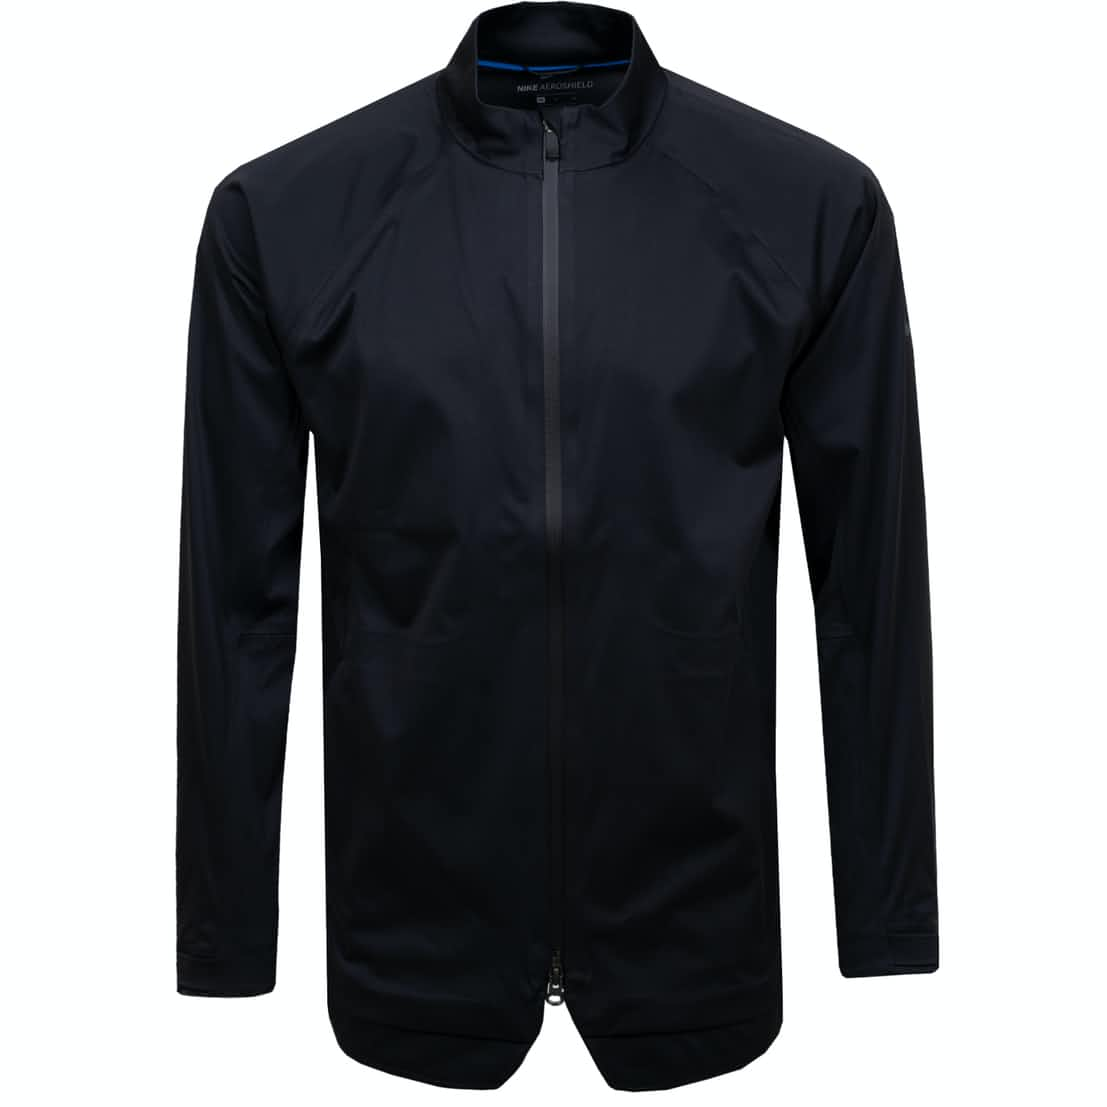 Aeroshield Jacket Off Noir/Black/Photo Blue - AW19